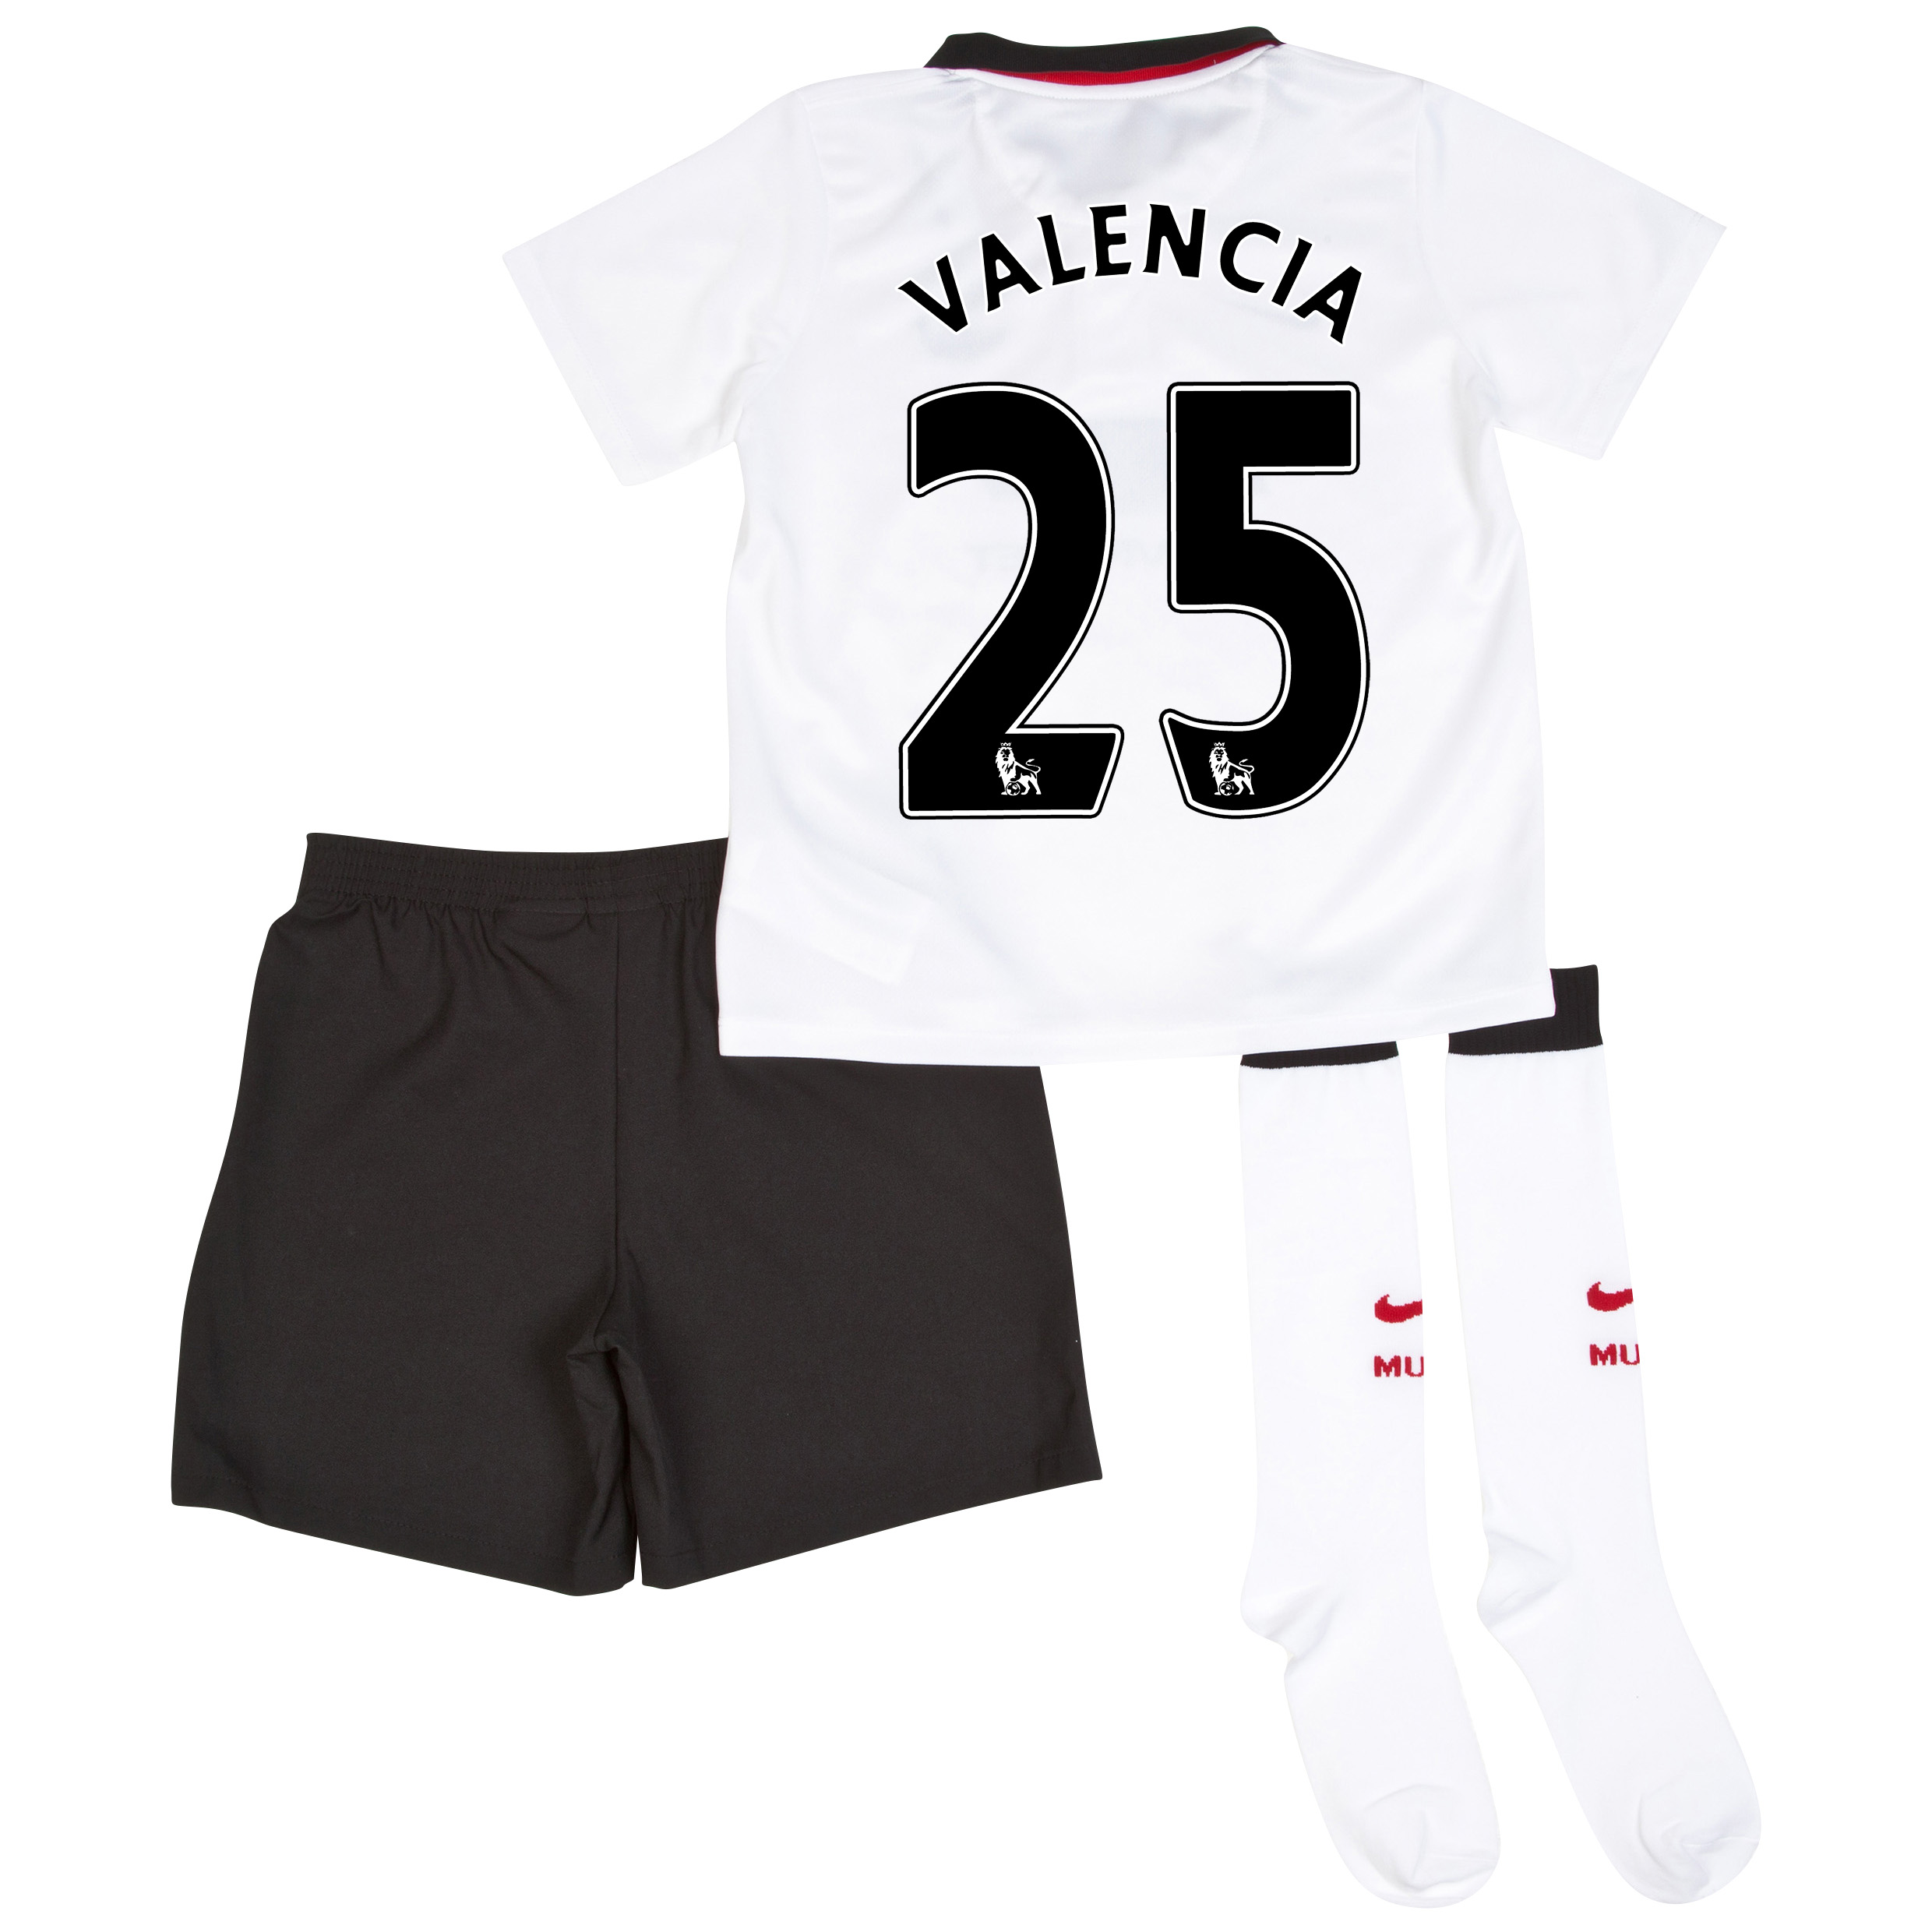 Manchester United Away Kit 2014/15 - Little Boys with Valencia 25 printing